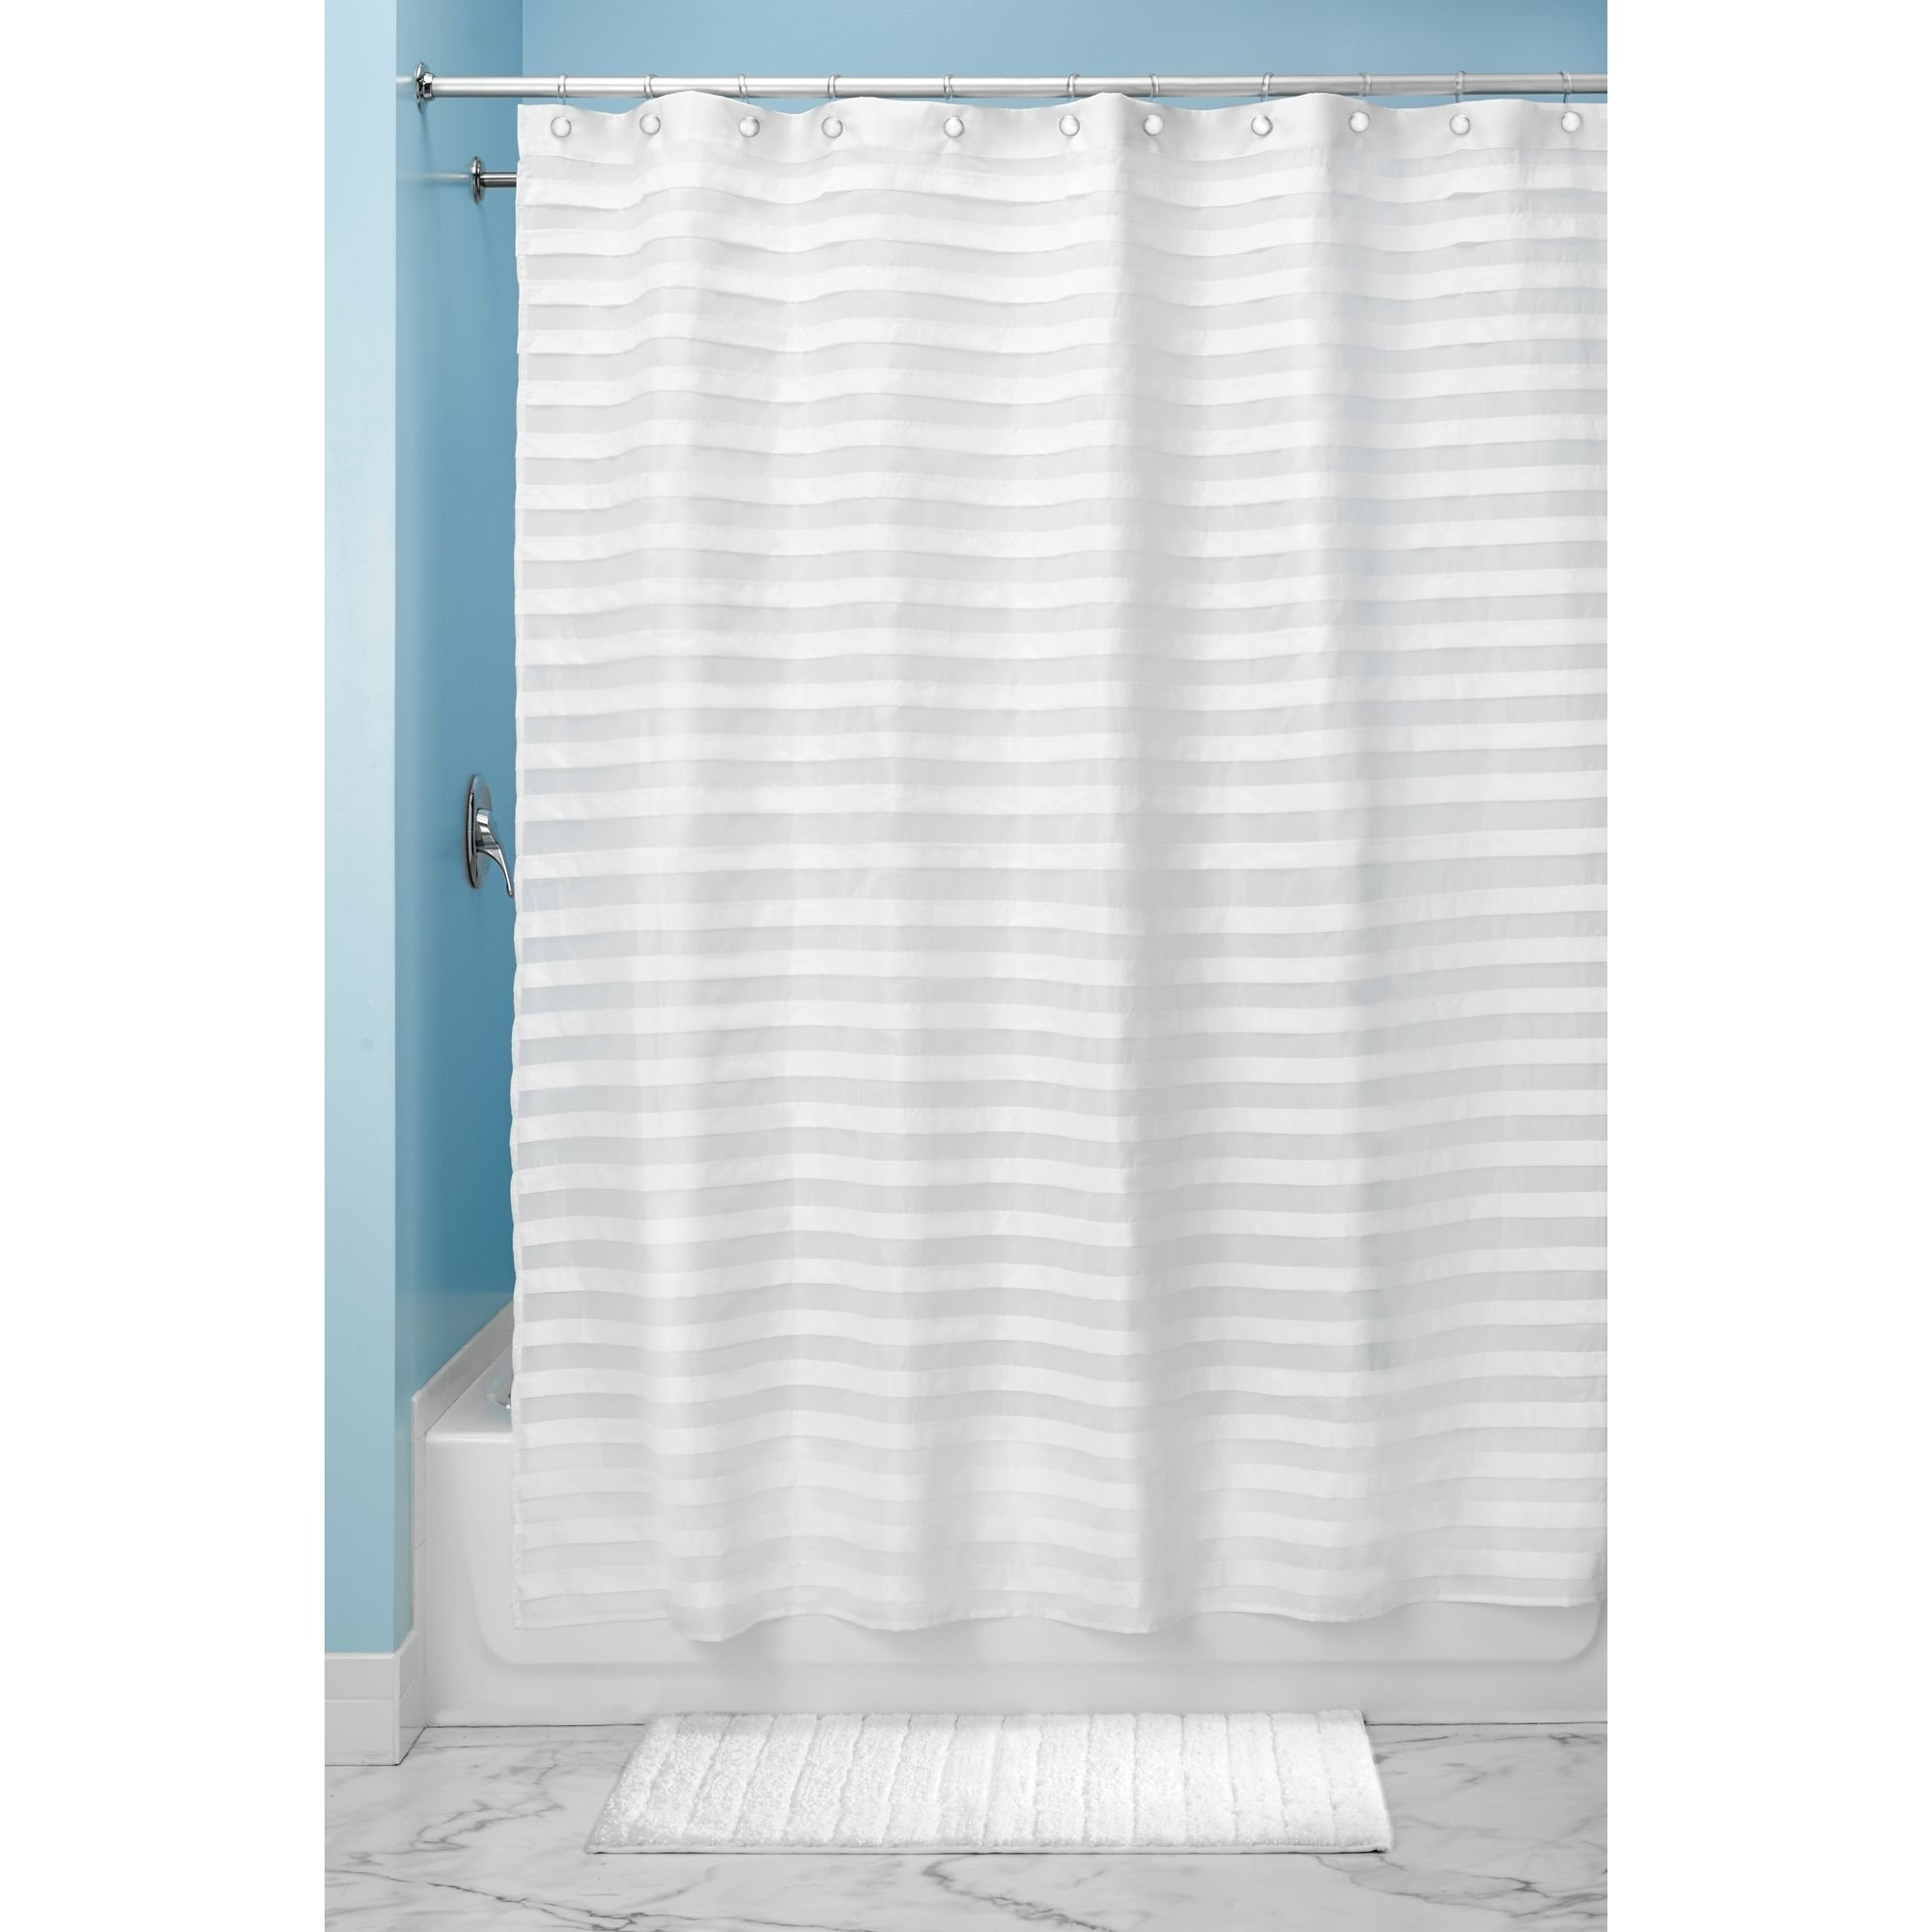 InterDesign Tuxedo Extra Long Fabric Polyester Shower Curtain, 72'' X 96'' - Pack of 2, White